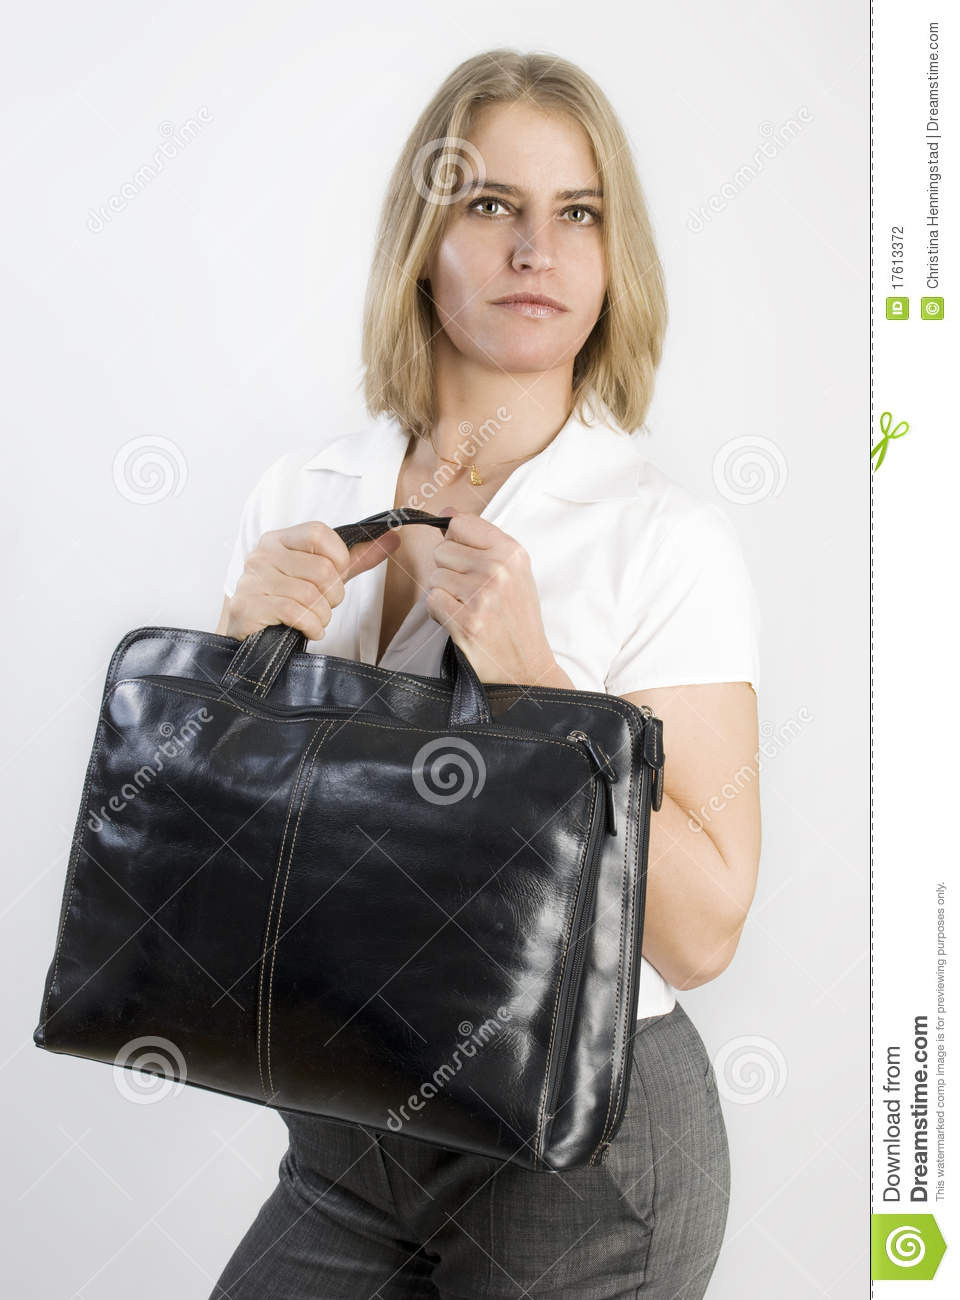 Business woman with aback bag in her hands.